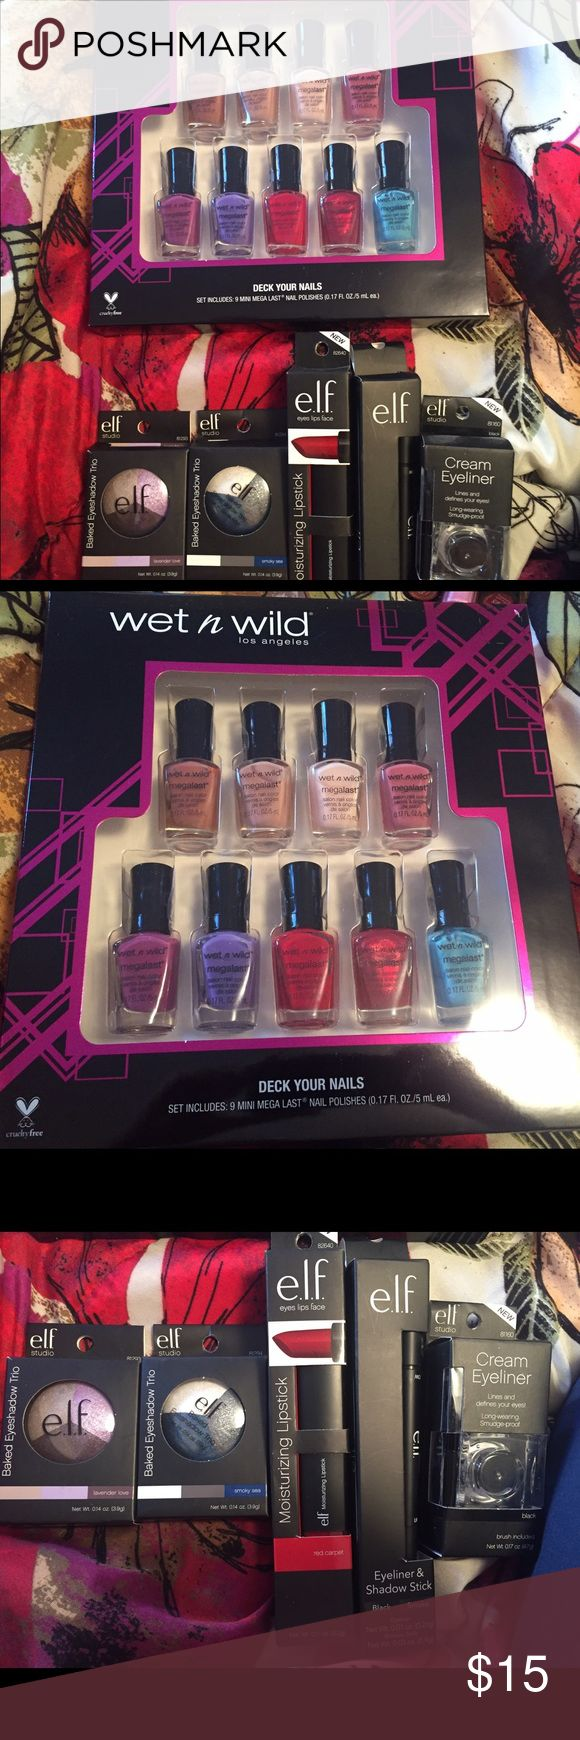 Makeup bundle Wet n Wild nail polish set: comes with 9 mini nail polishes. 2 Elf eye shadow trio: lavender love and smokey sea. 1 Elf moisturizing lipstick: red carpet. 1 Elf eyeliner & shadow stick. 1 Elf cream eyeliner. All brand new and unopened! ELF Makeup